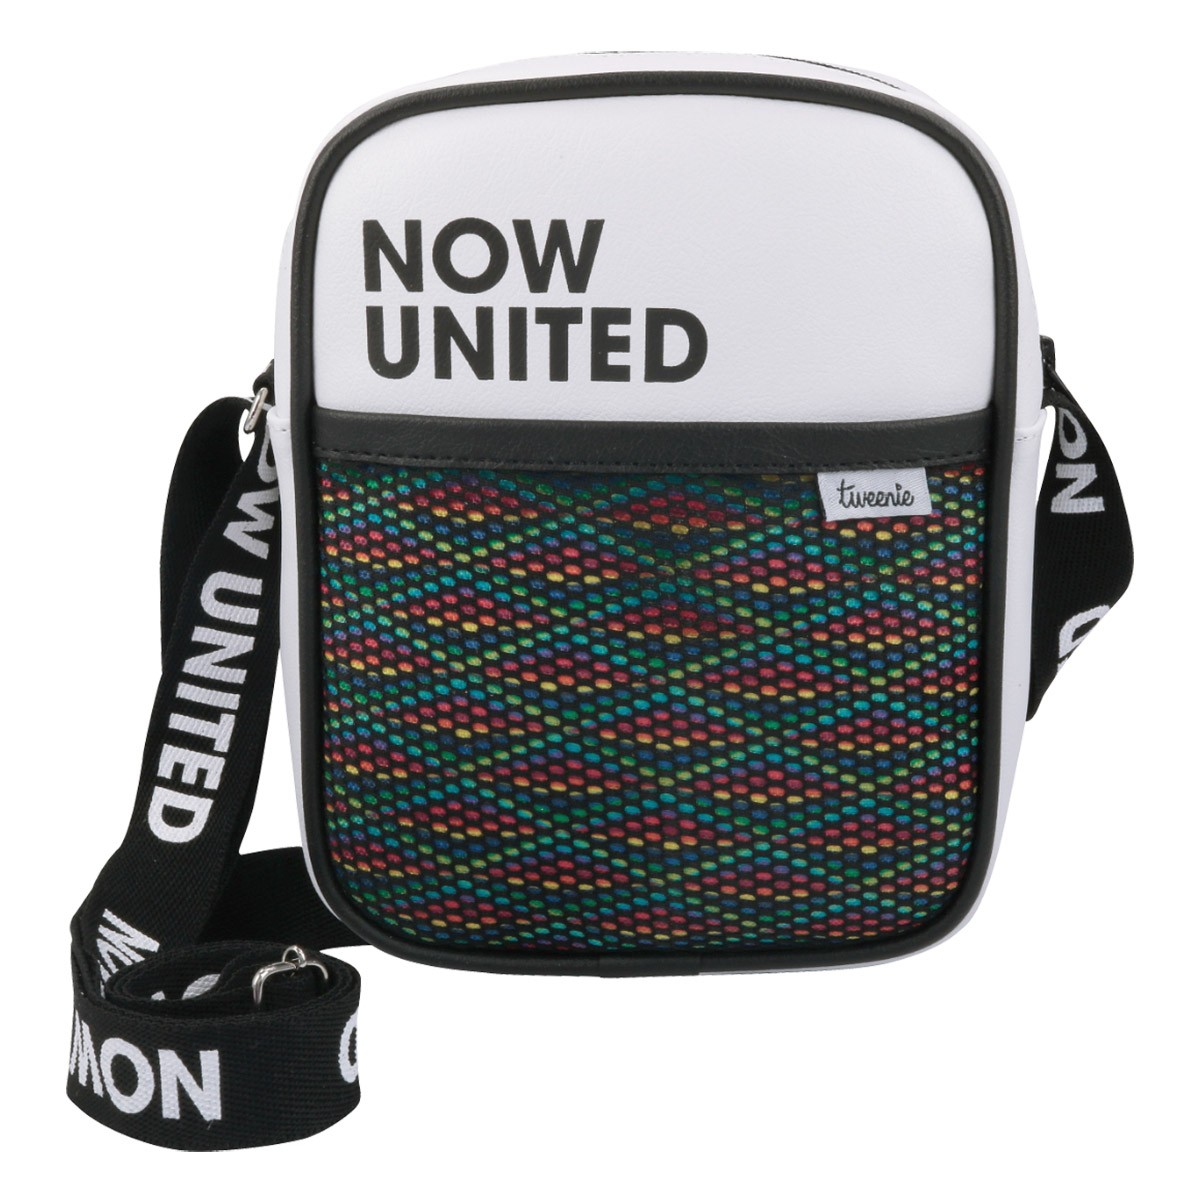 Bolsa Pampili Now United Mini Bag Tweenie